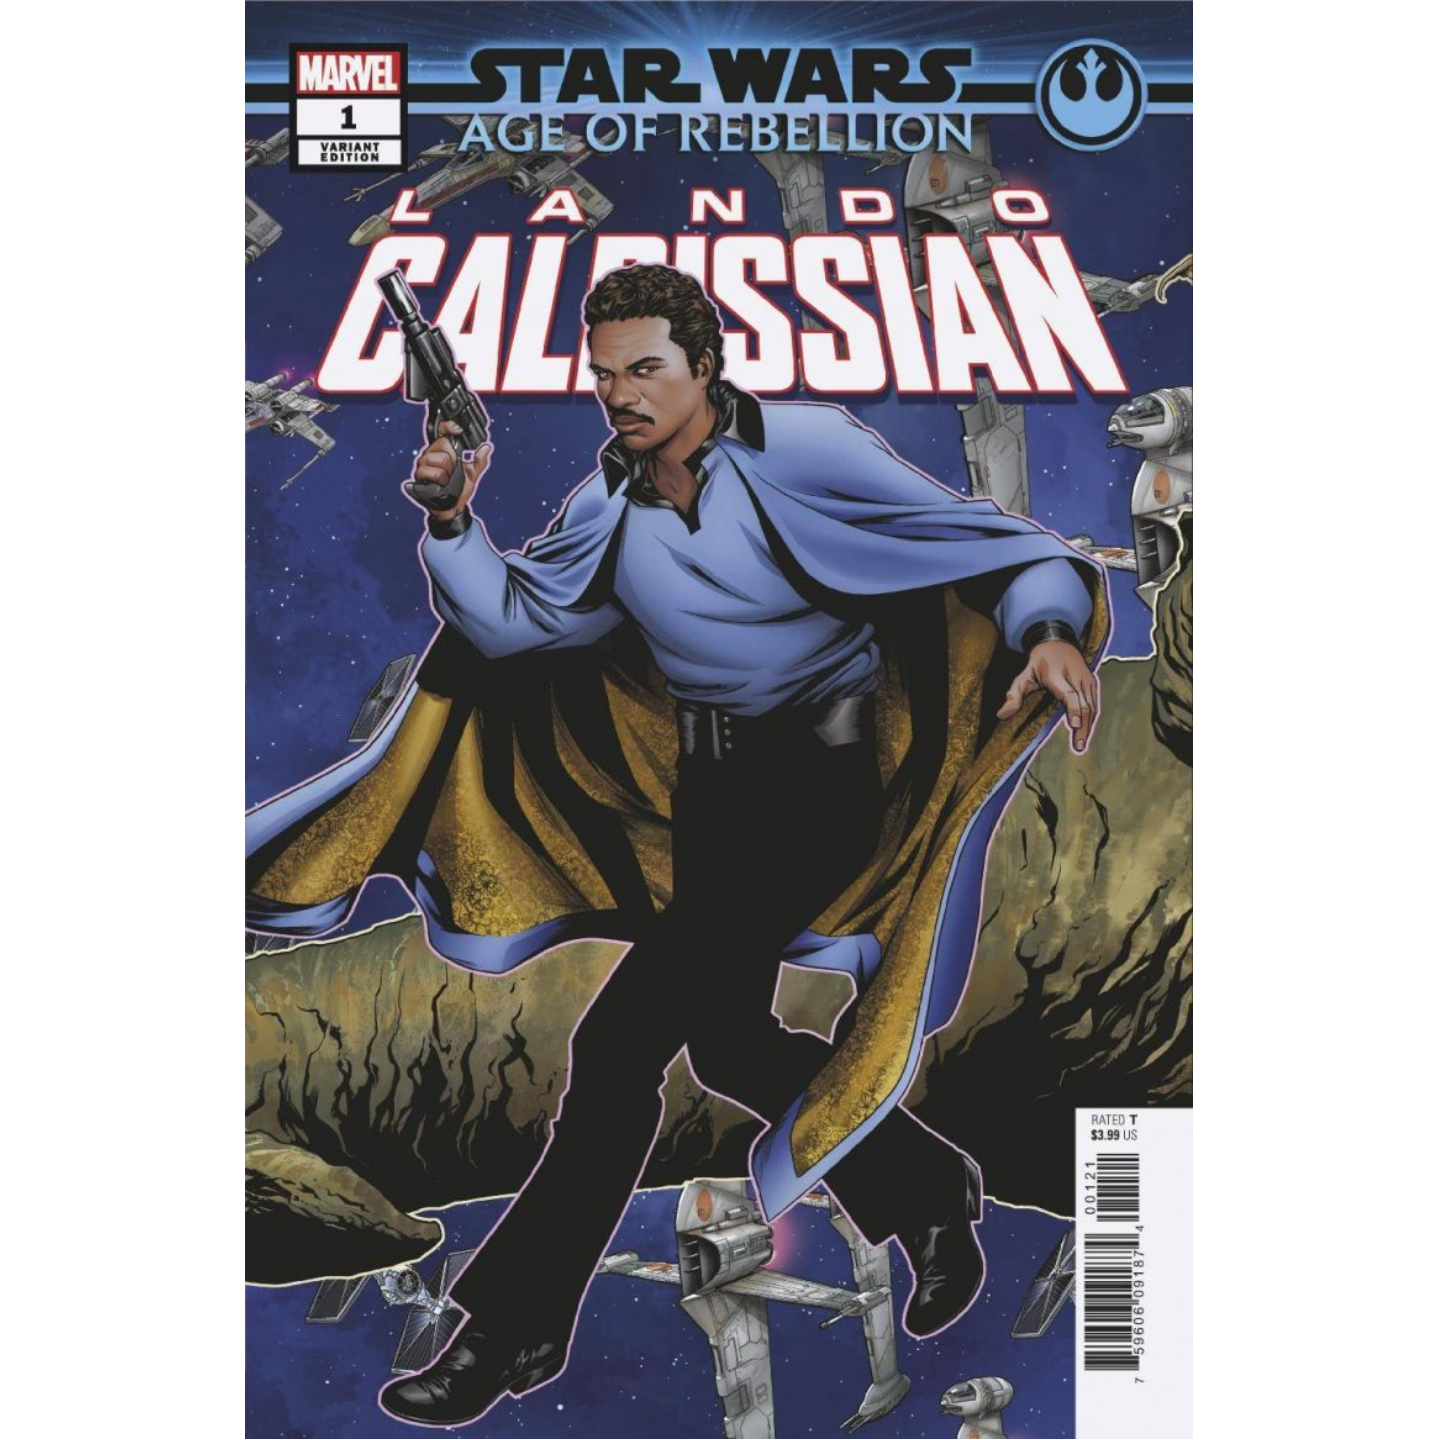 STAR WARS AGE OF REBELLION - LANDO CALRISSIAN - MCKONE VAR